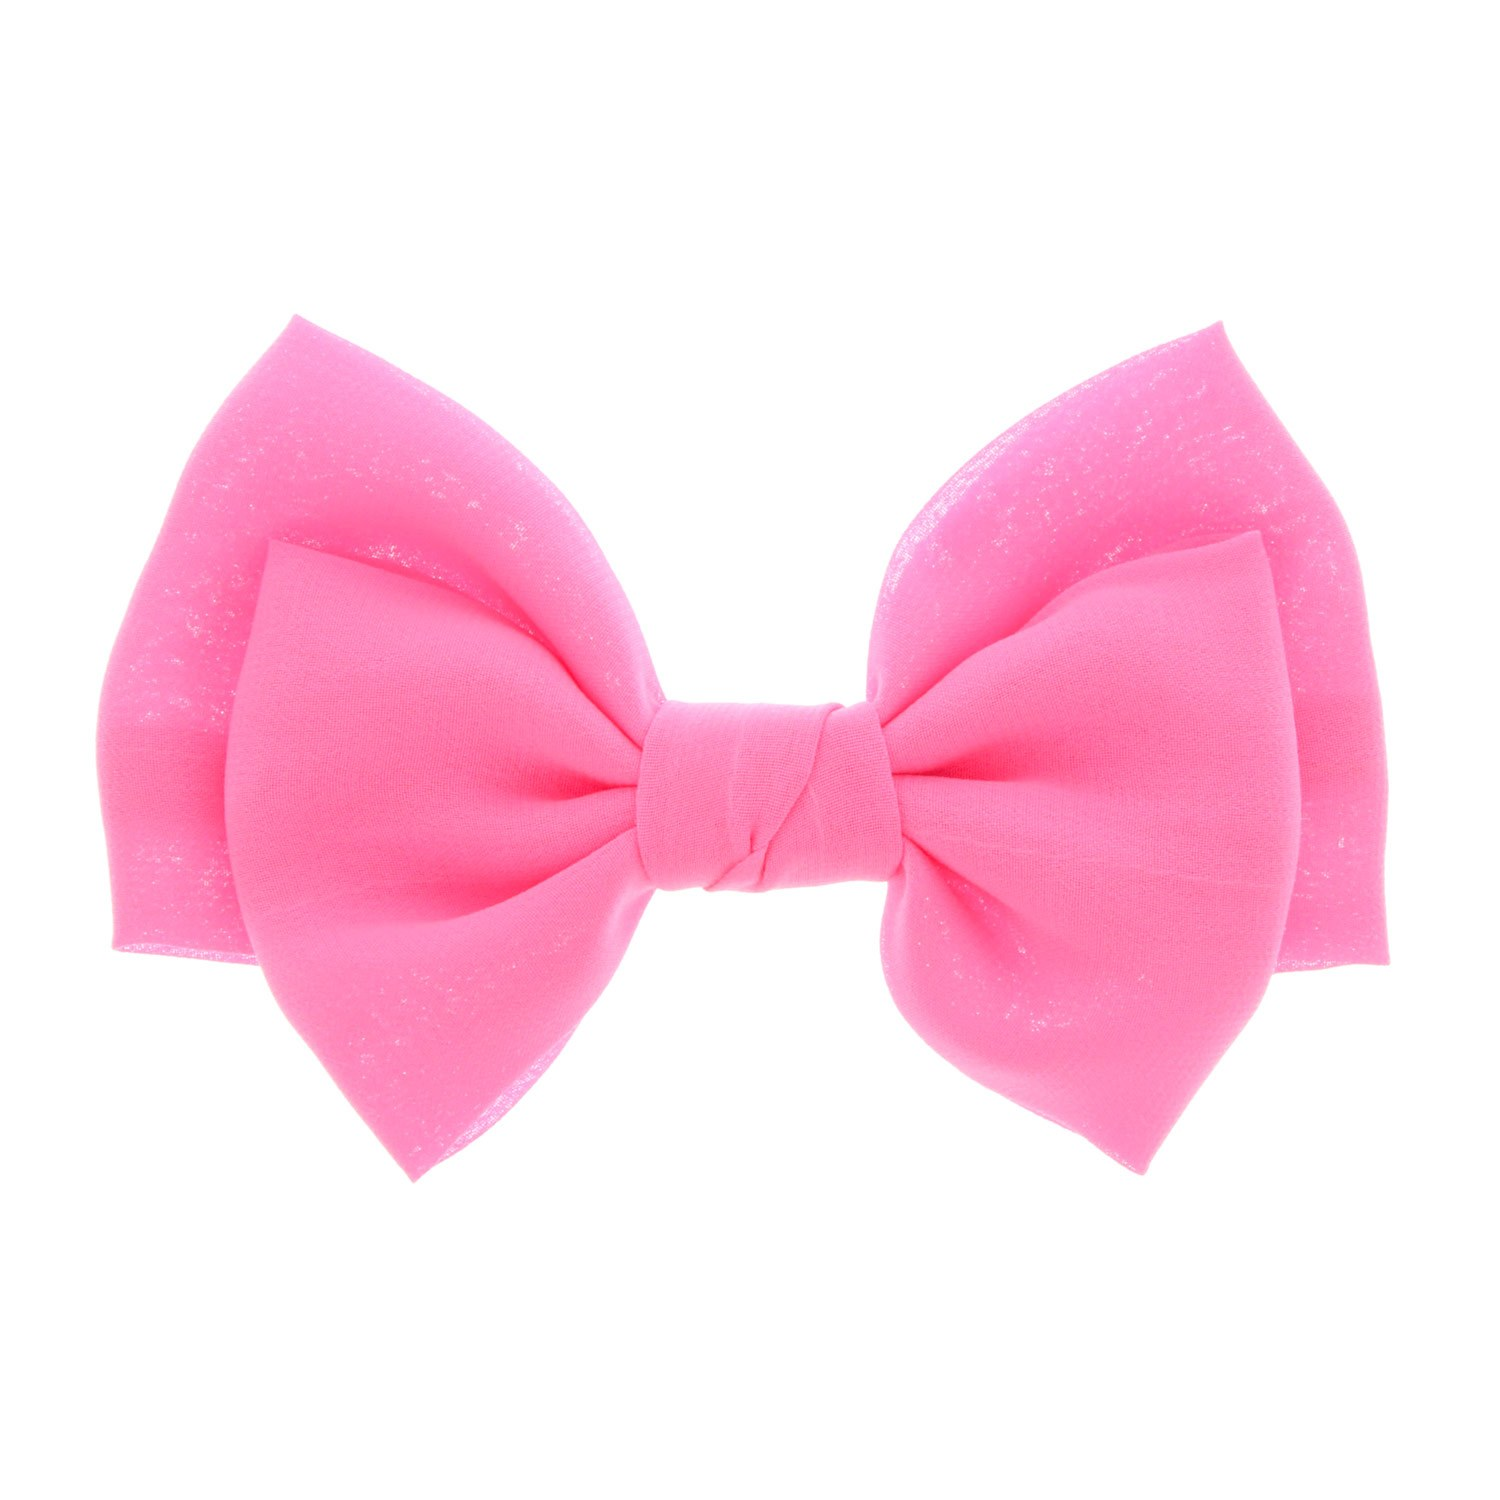 1500x1500 Hair Bow Clip Art Pink Hairsstyles.co